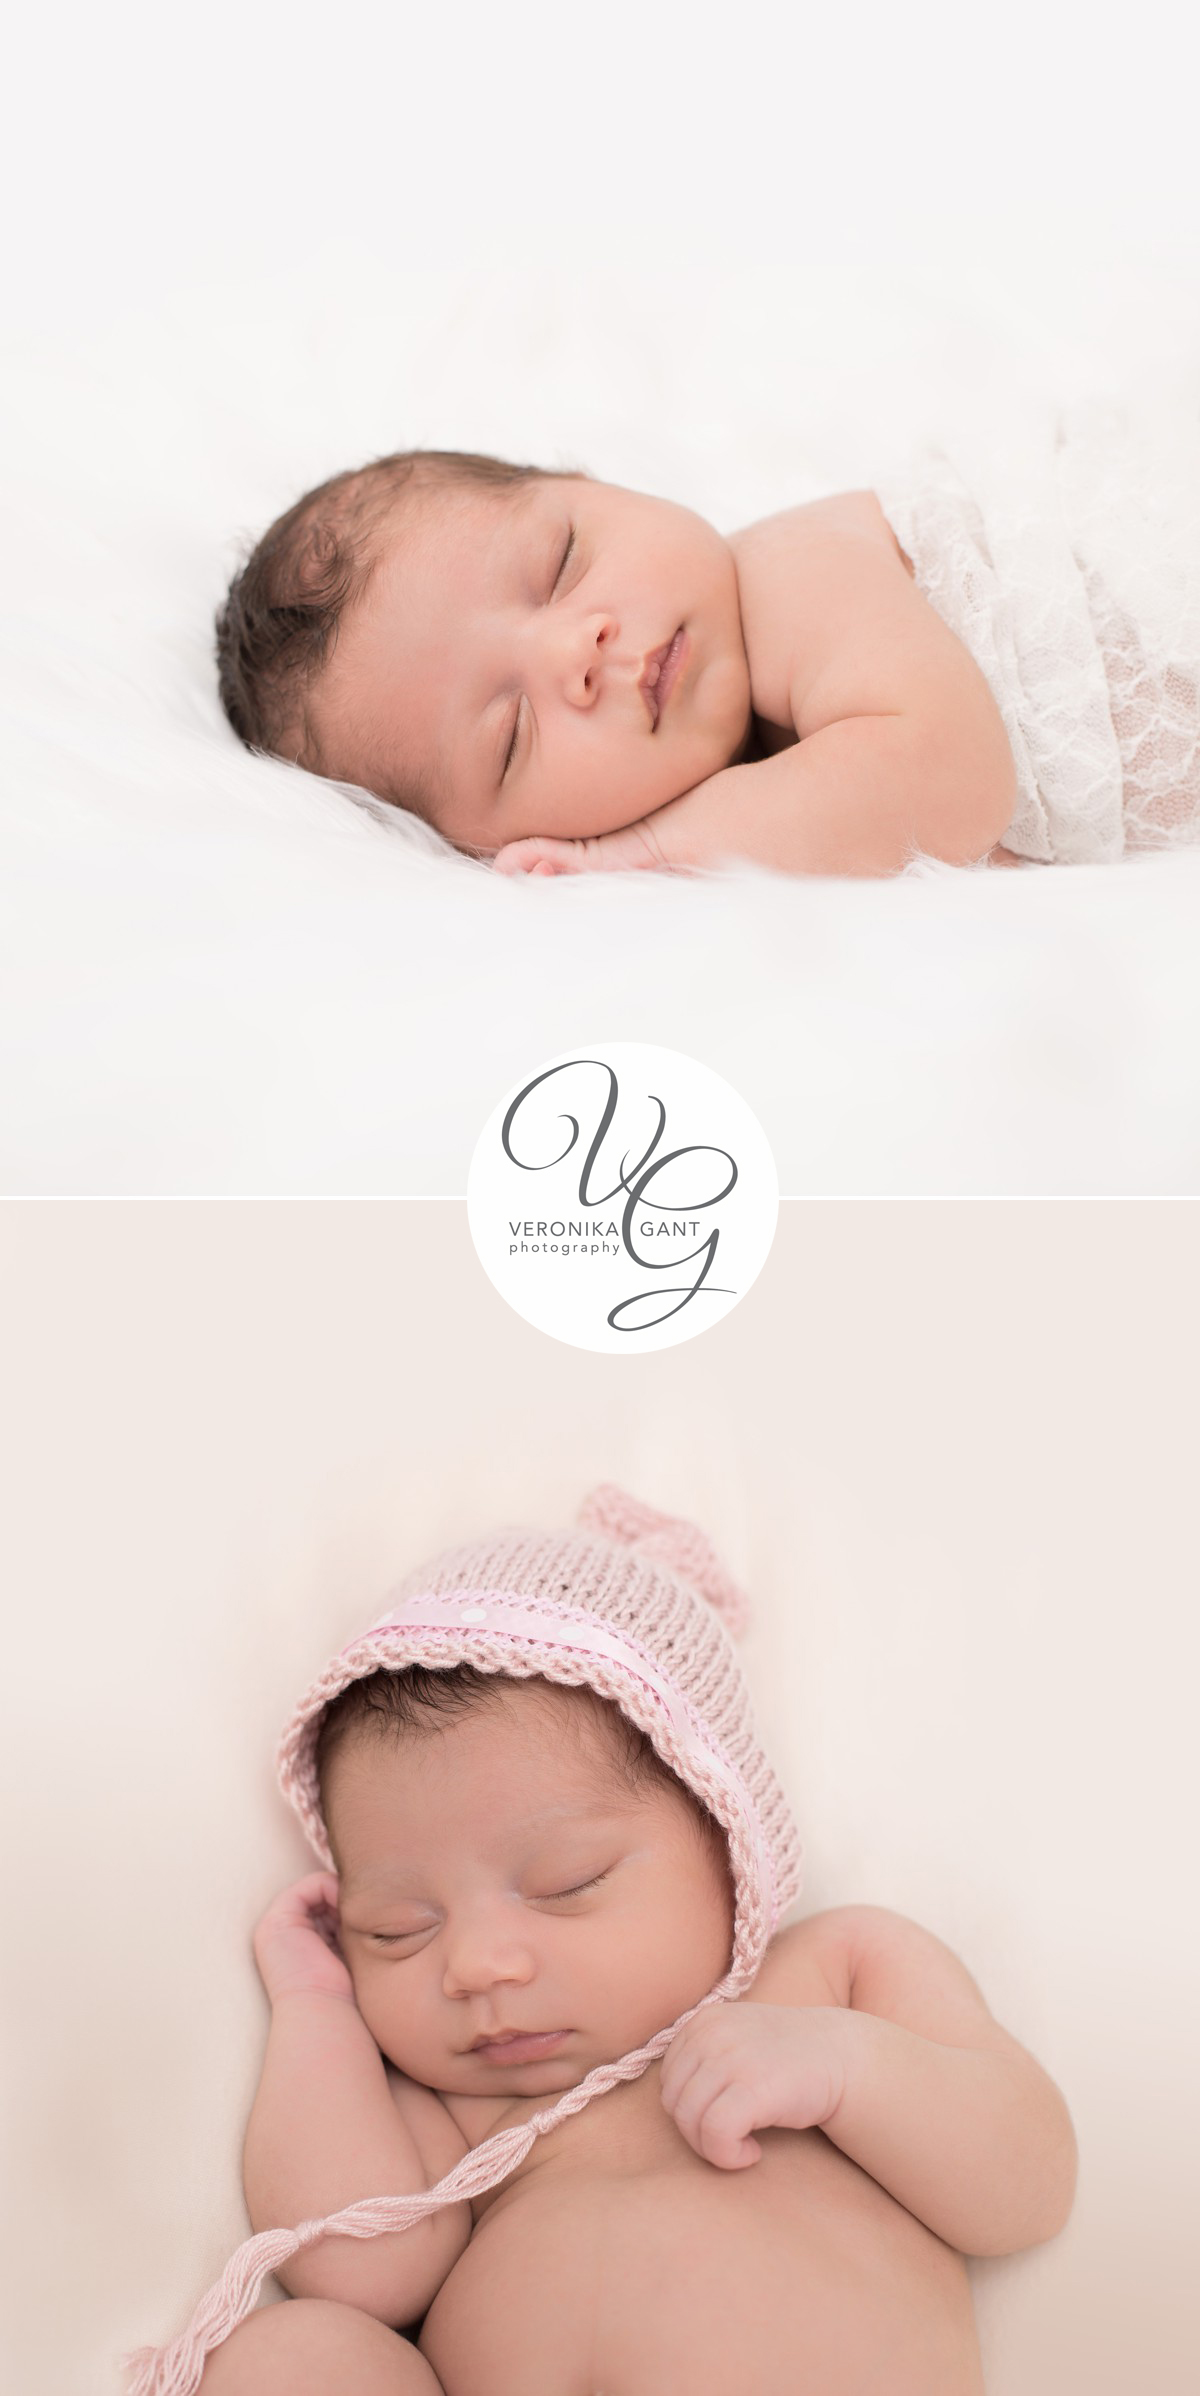 San-Antonio-Newborn-Photography-Ideas-by-Veronika-Gant-Christmas-Theme-04